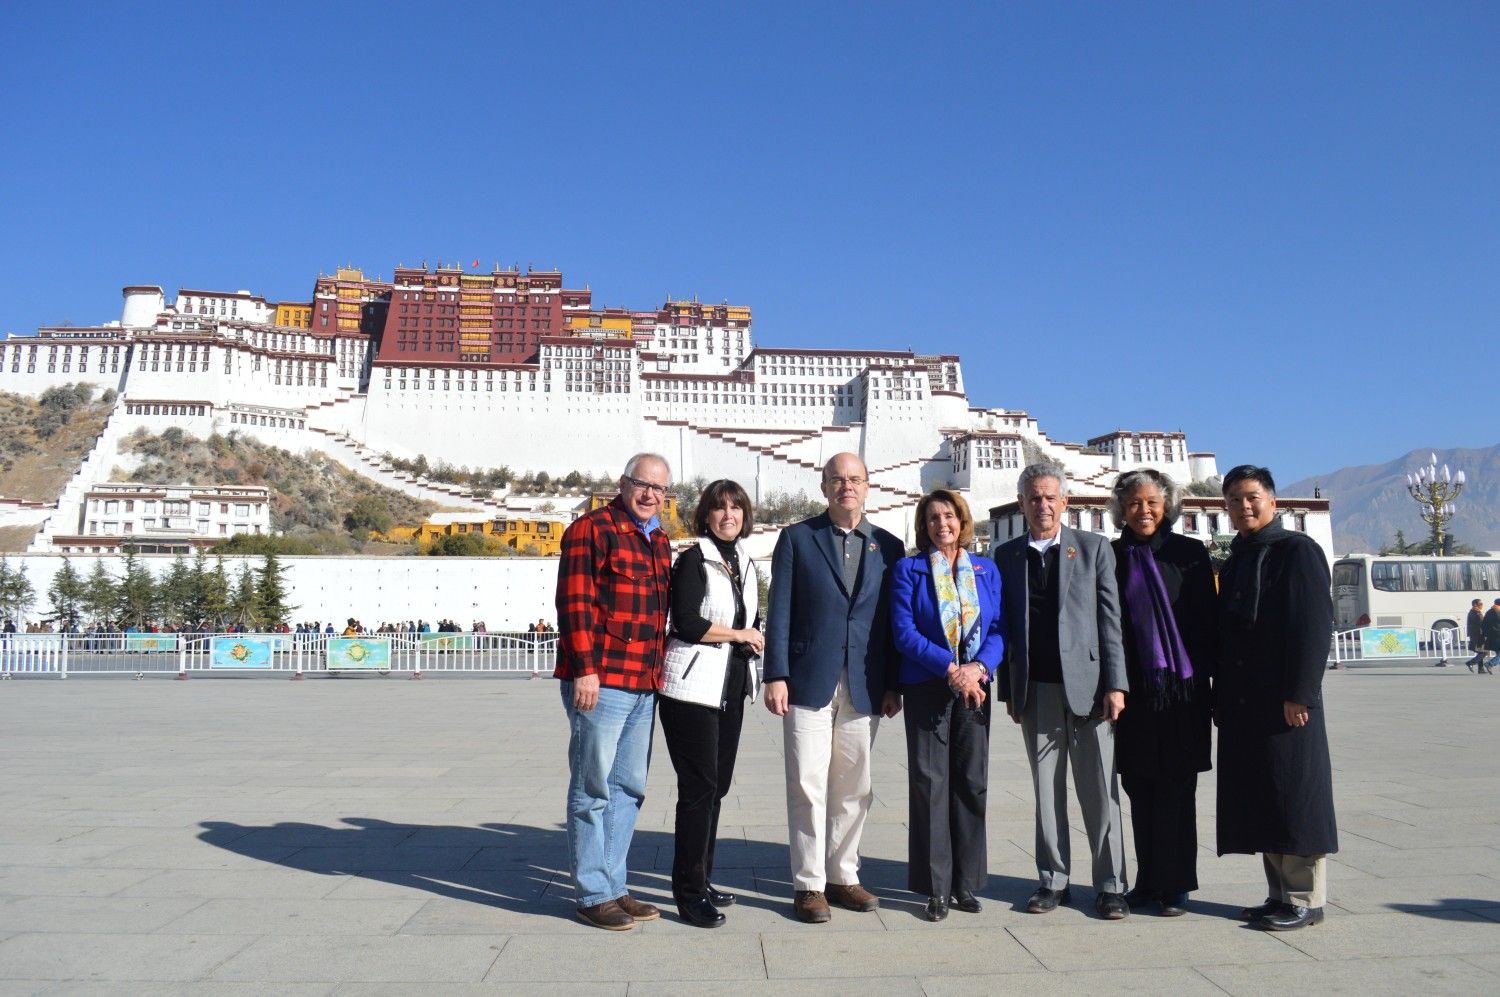 Leader Pelosi and Members of the Congressional Delegation in front of the Potala Palace in Lhasa. (Photo courtesy: democraticleader.gov)